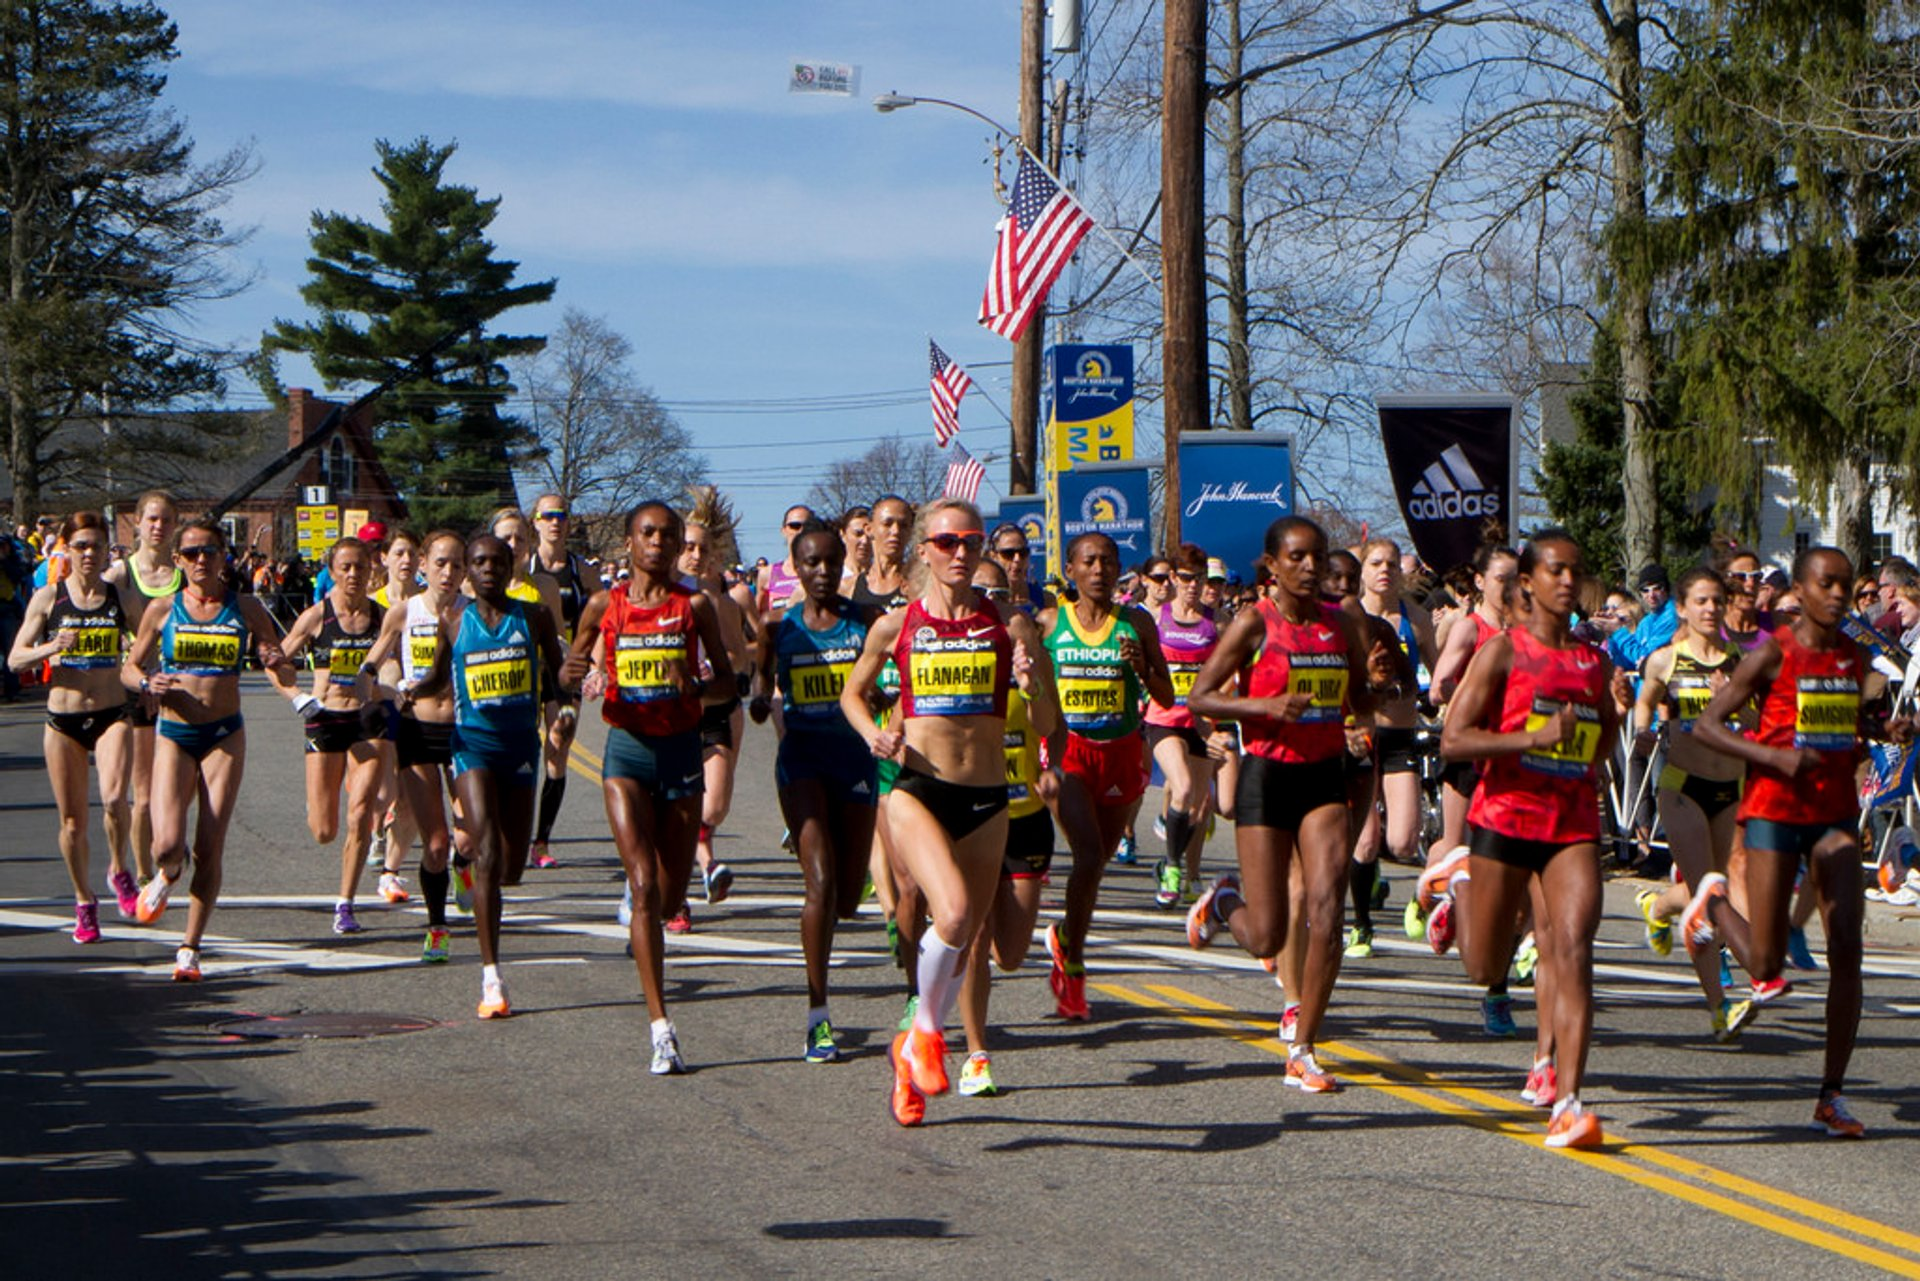 Boston Marathon in Boston - Best Season 2020